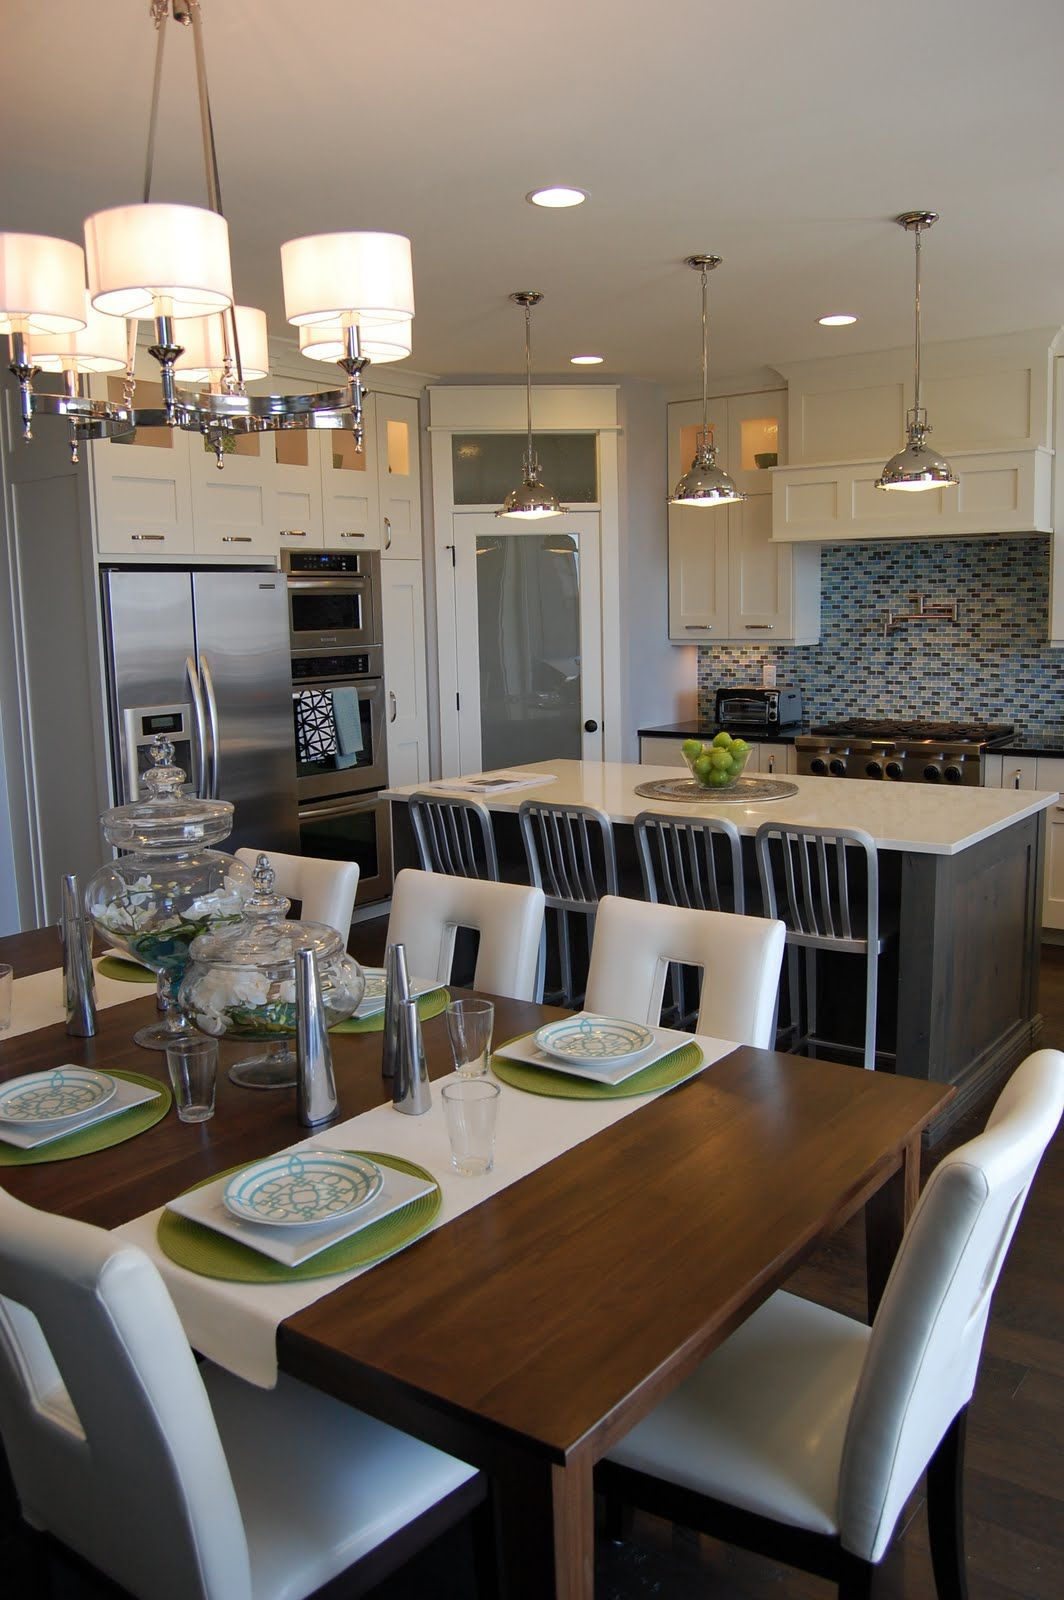 Kitchen Lighting Idea Pendants And Table White Cabinets With Dark Grey Island